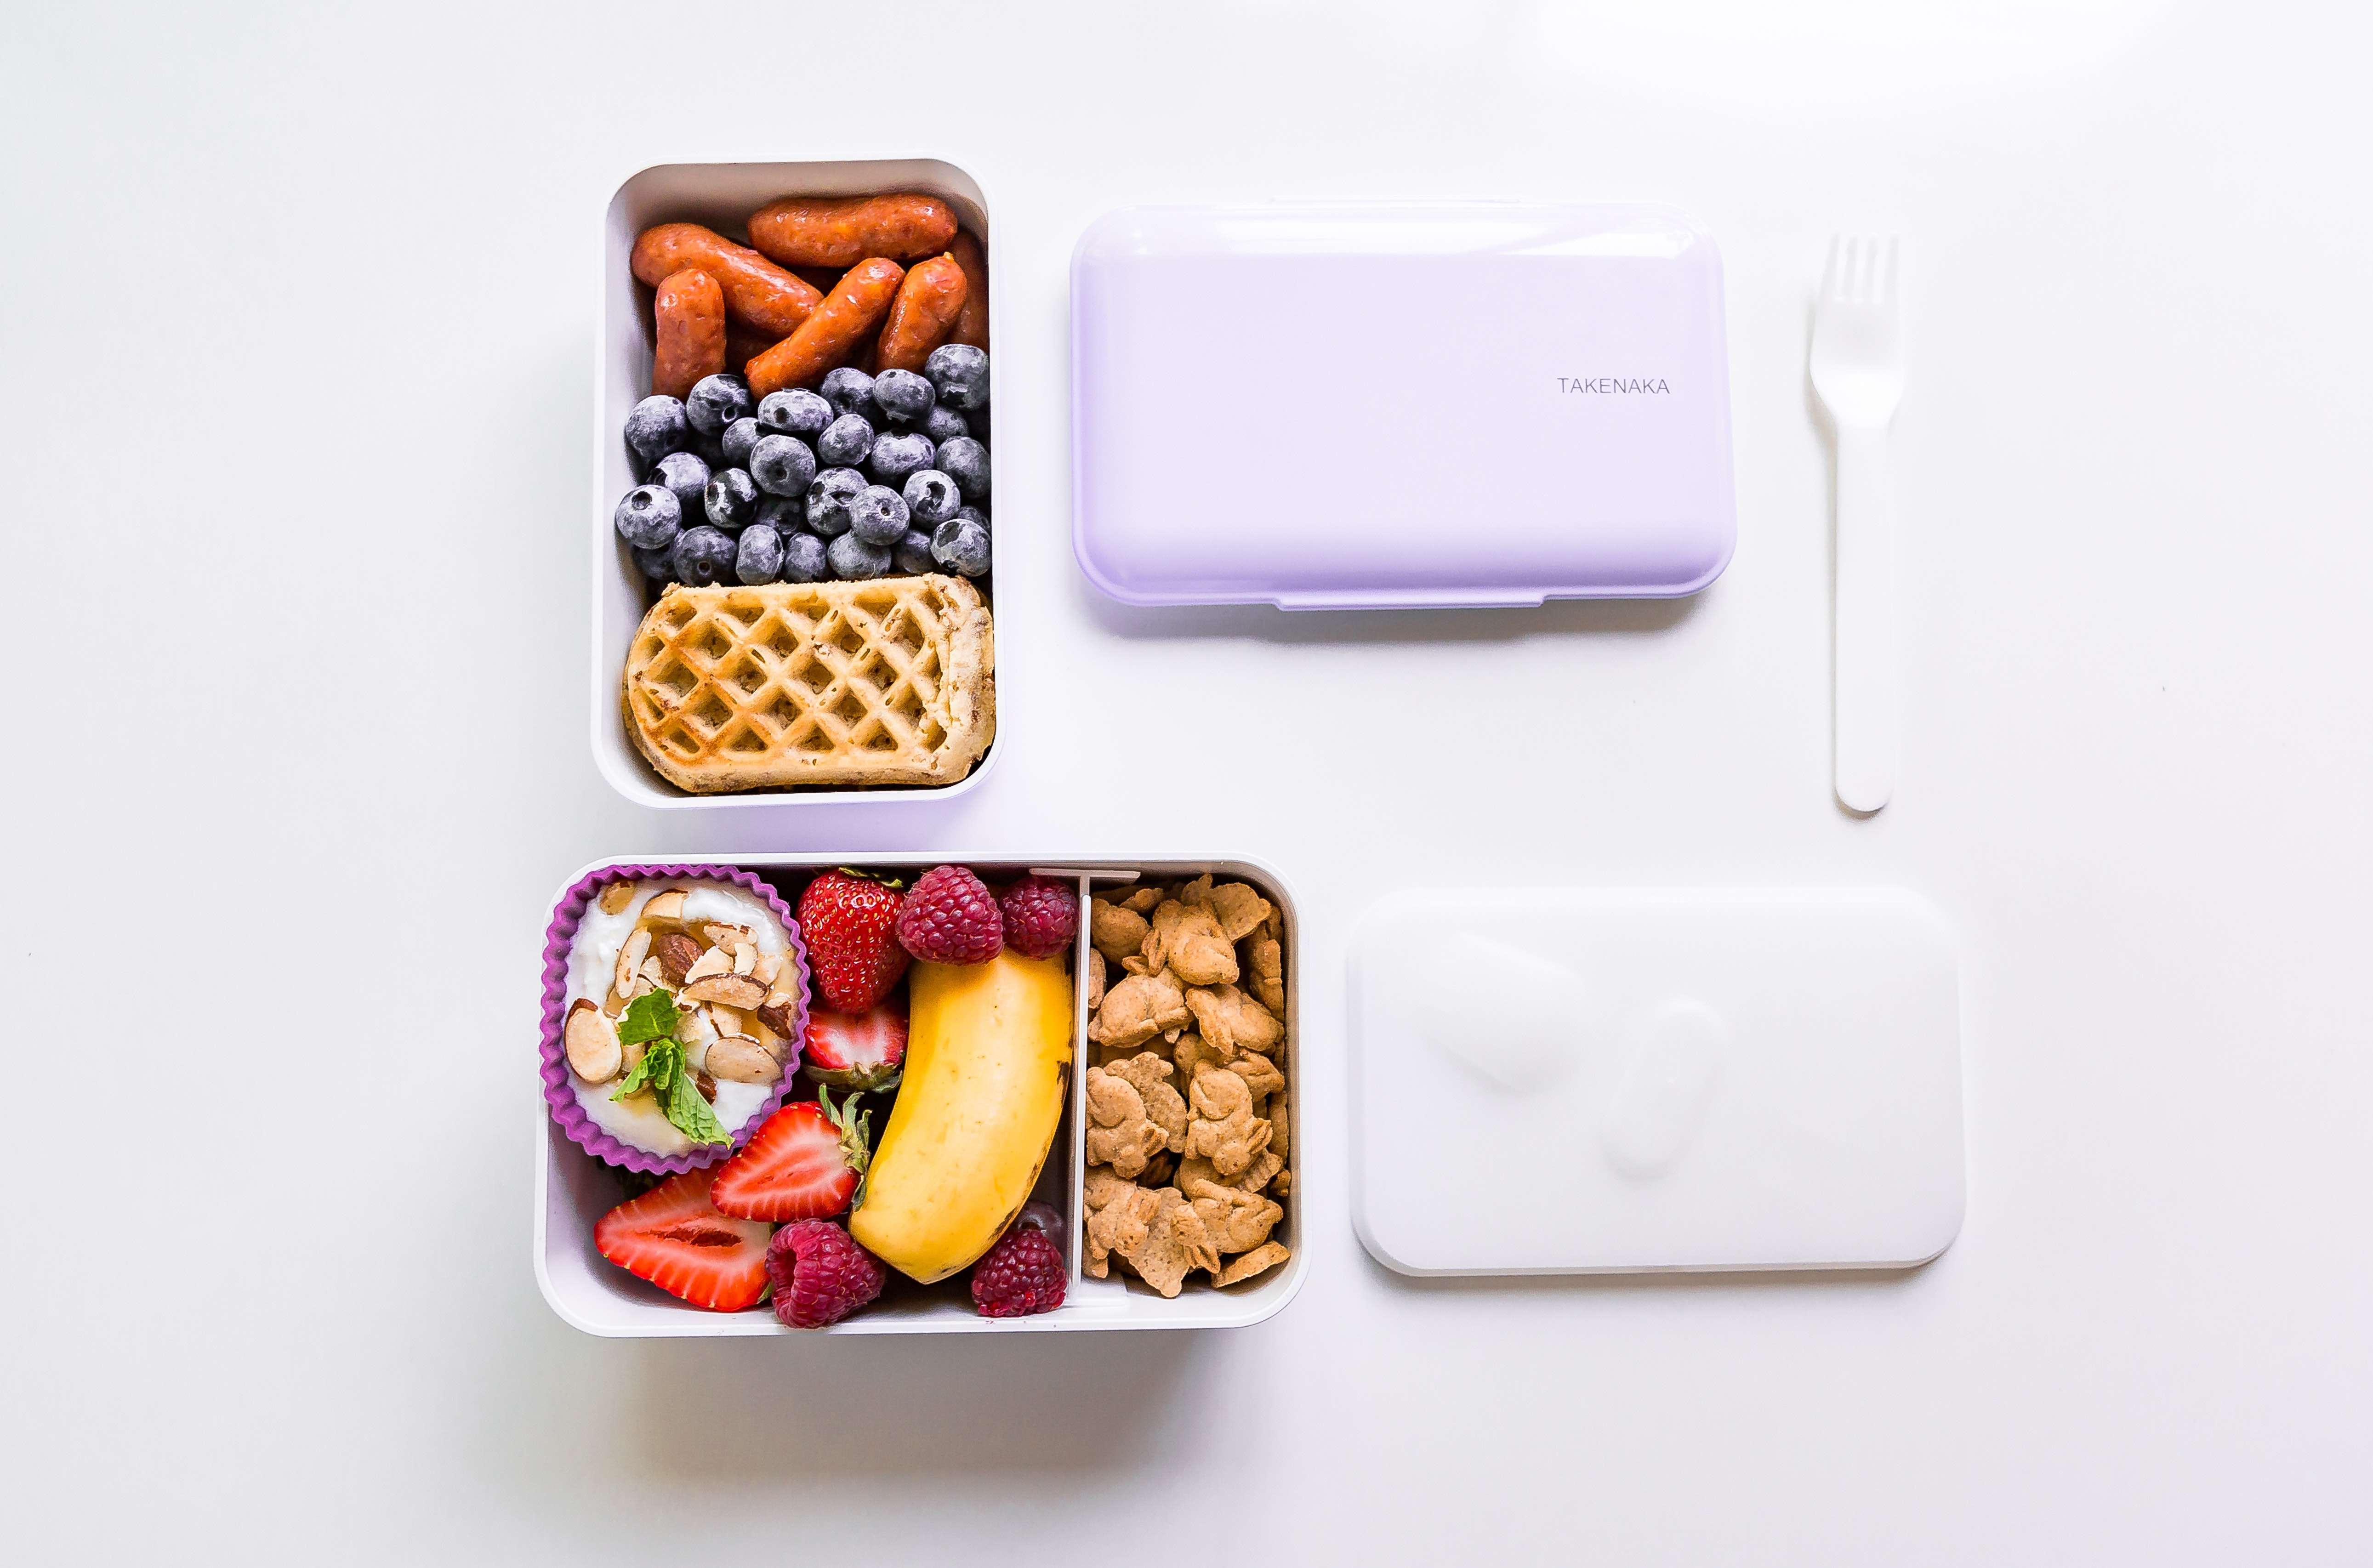 2017 09 04 Back To School Bento Breakfast Box 1A Resize